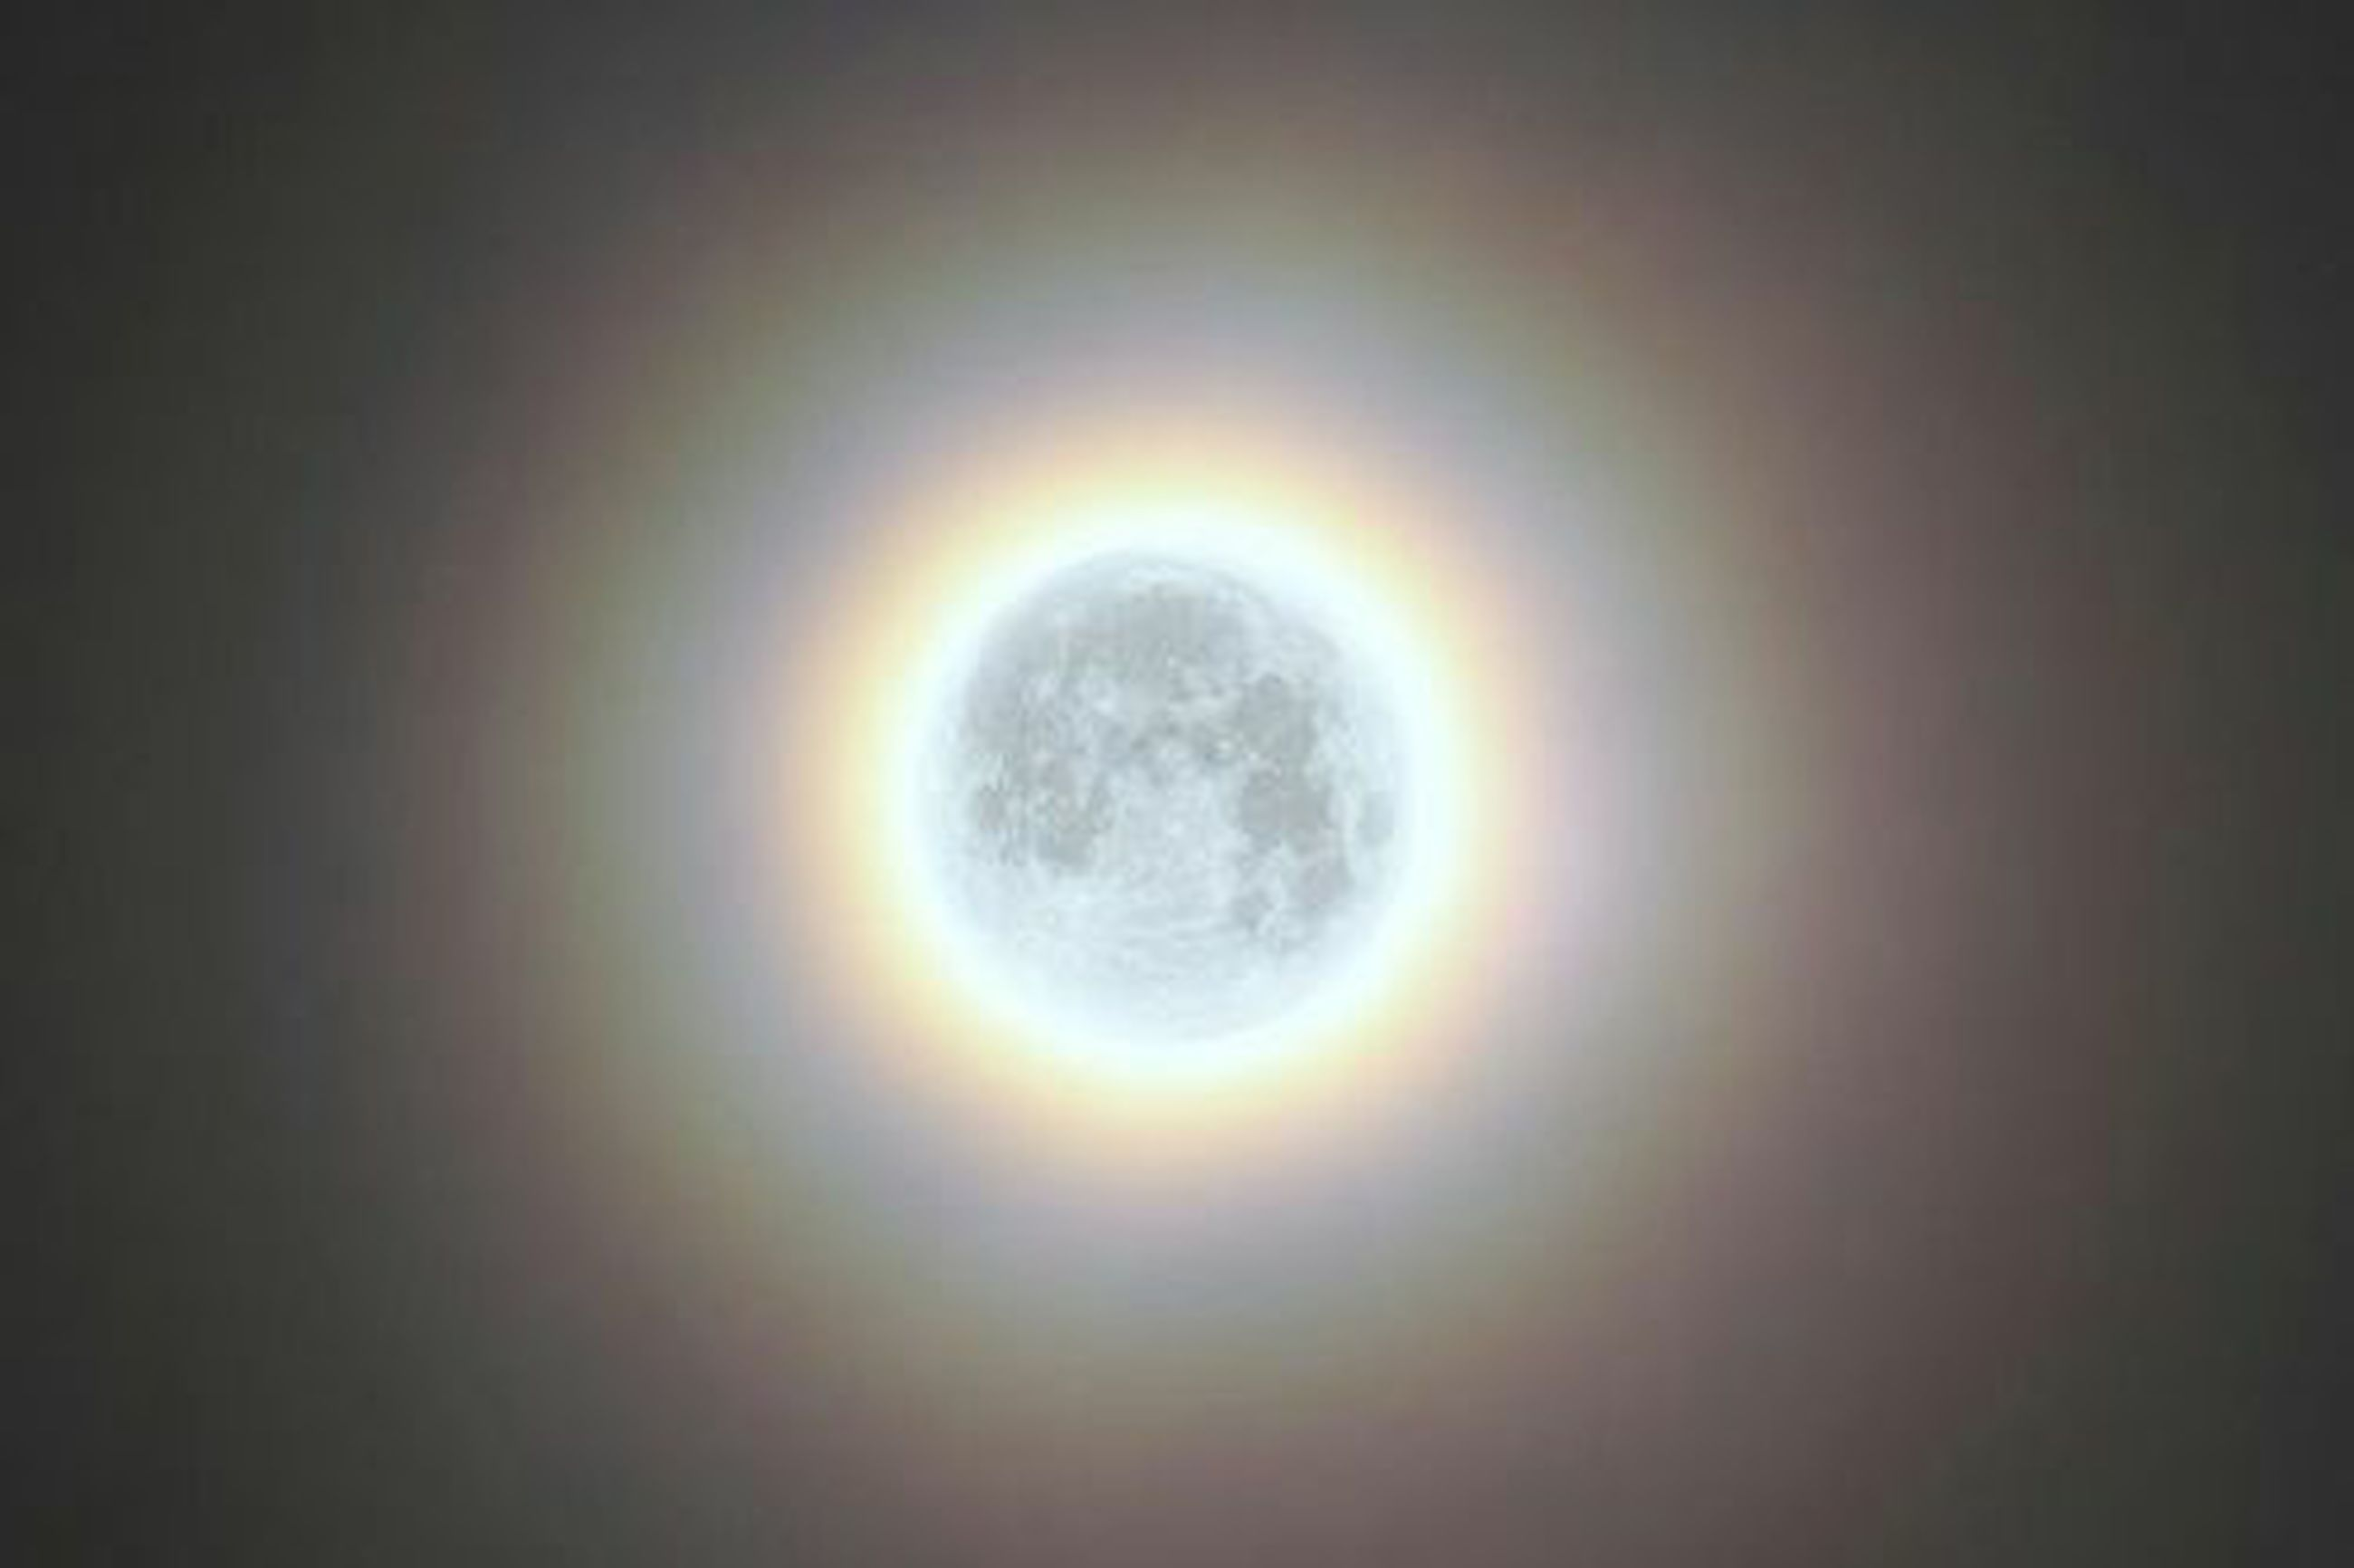 circle, low angle view, sun, copy space, glowing, geometric shape, sky, illuminated, moon, no people, backgrounds, dark, night, indoors, nature, lighting equipment, light - natural phenomenon, full frame, lens flare